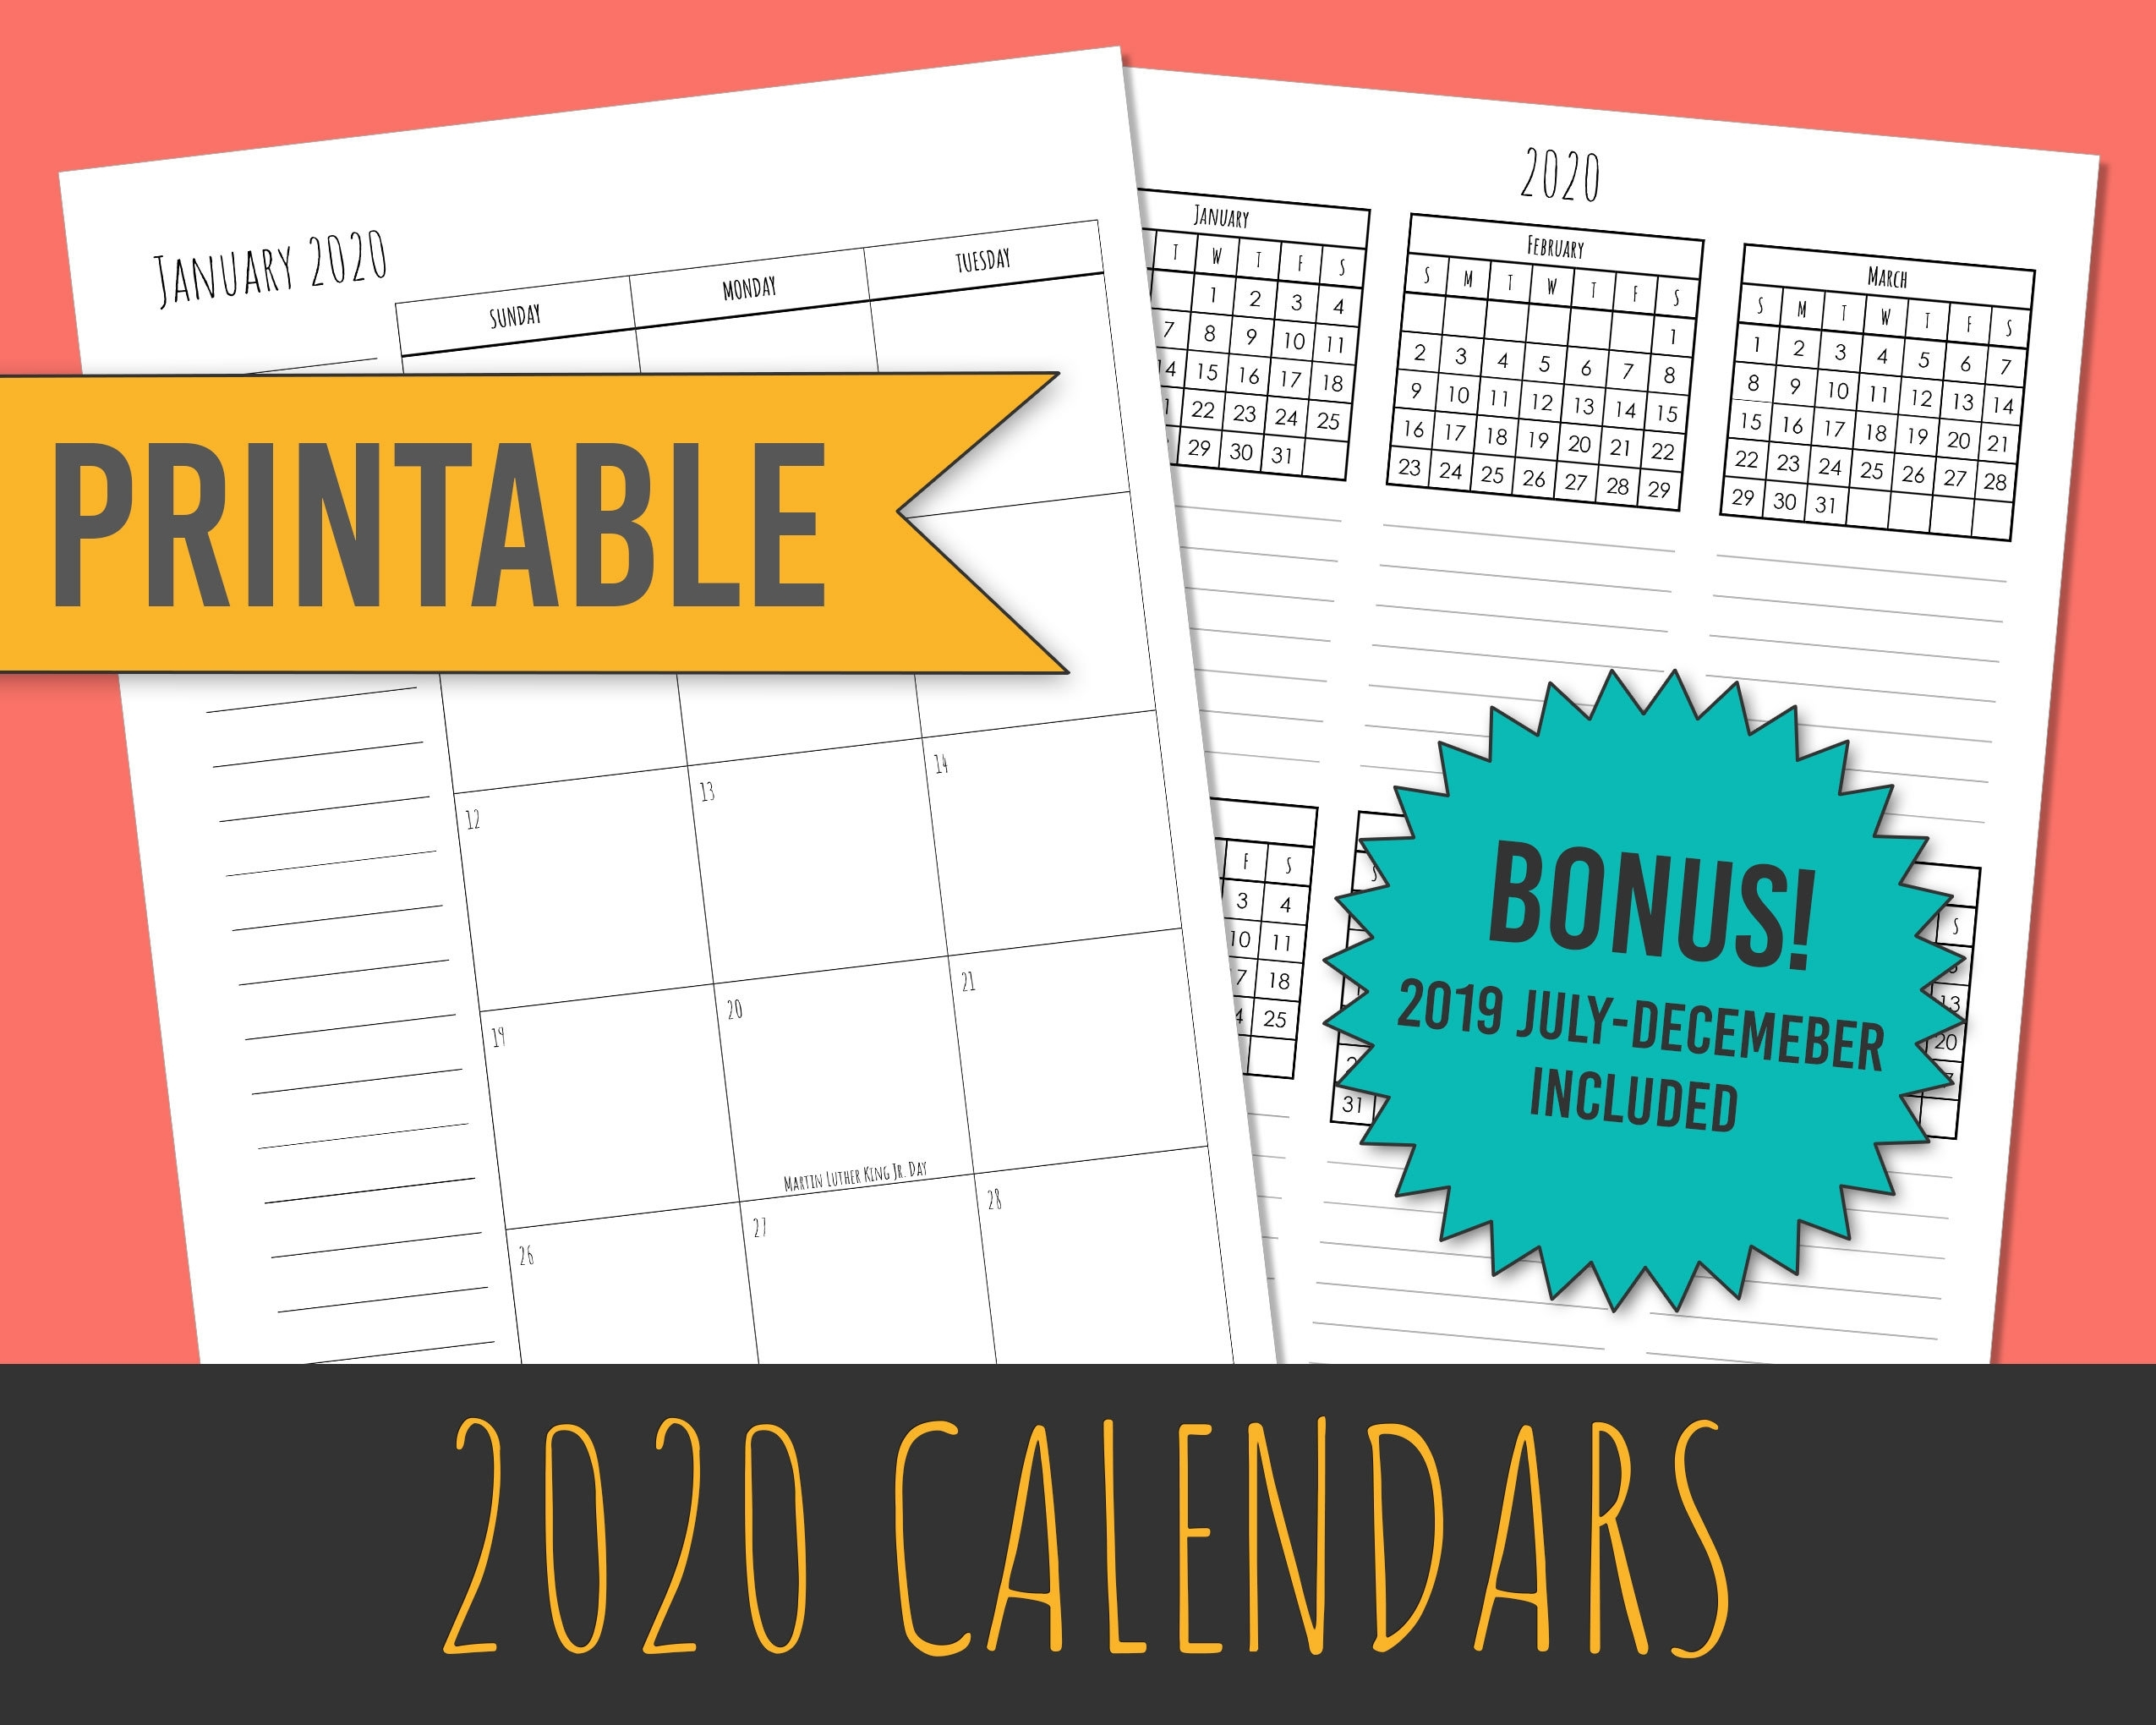 Get Month At A Glance 202